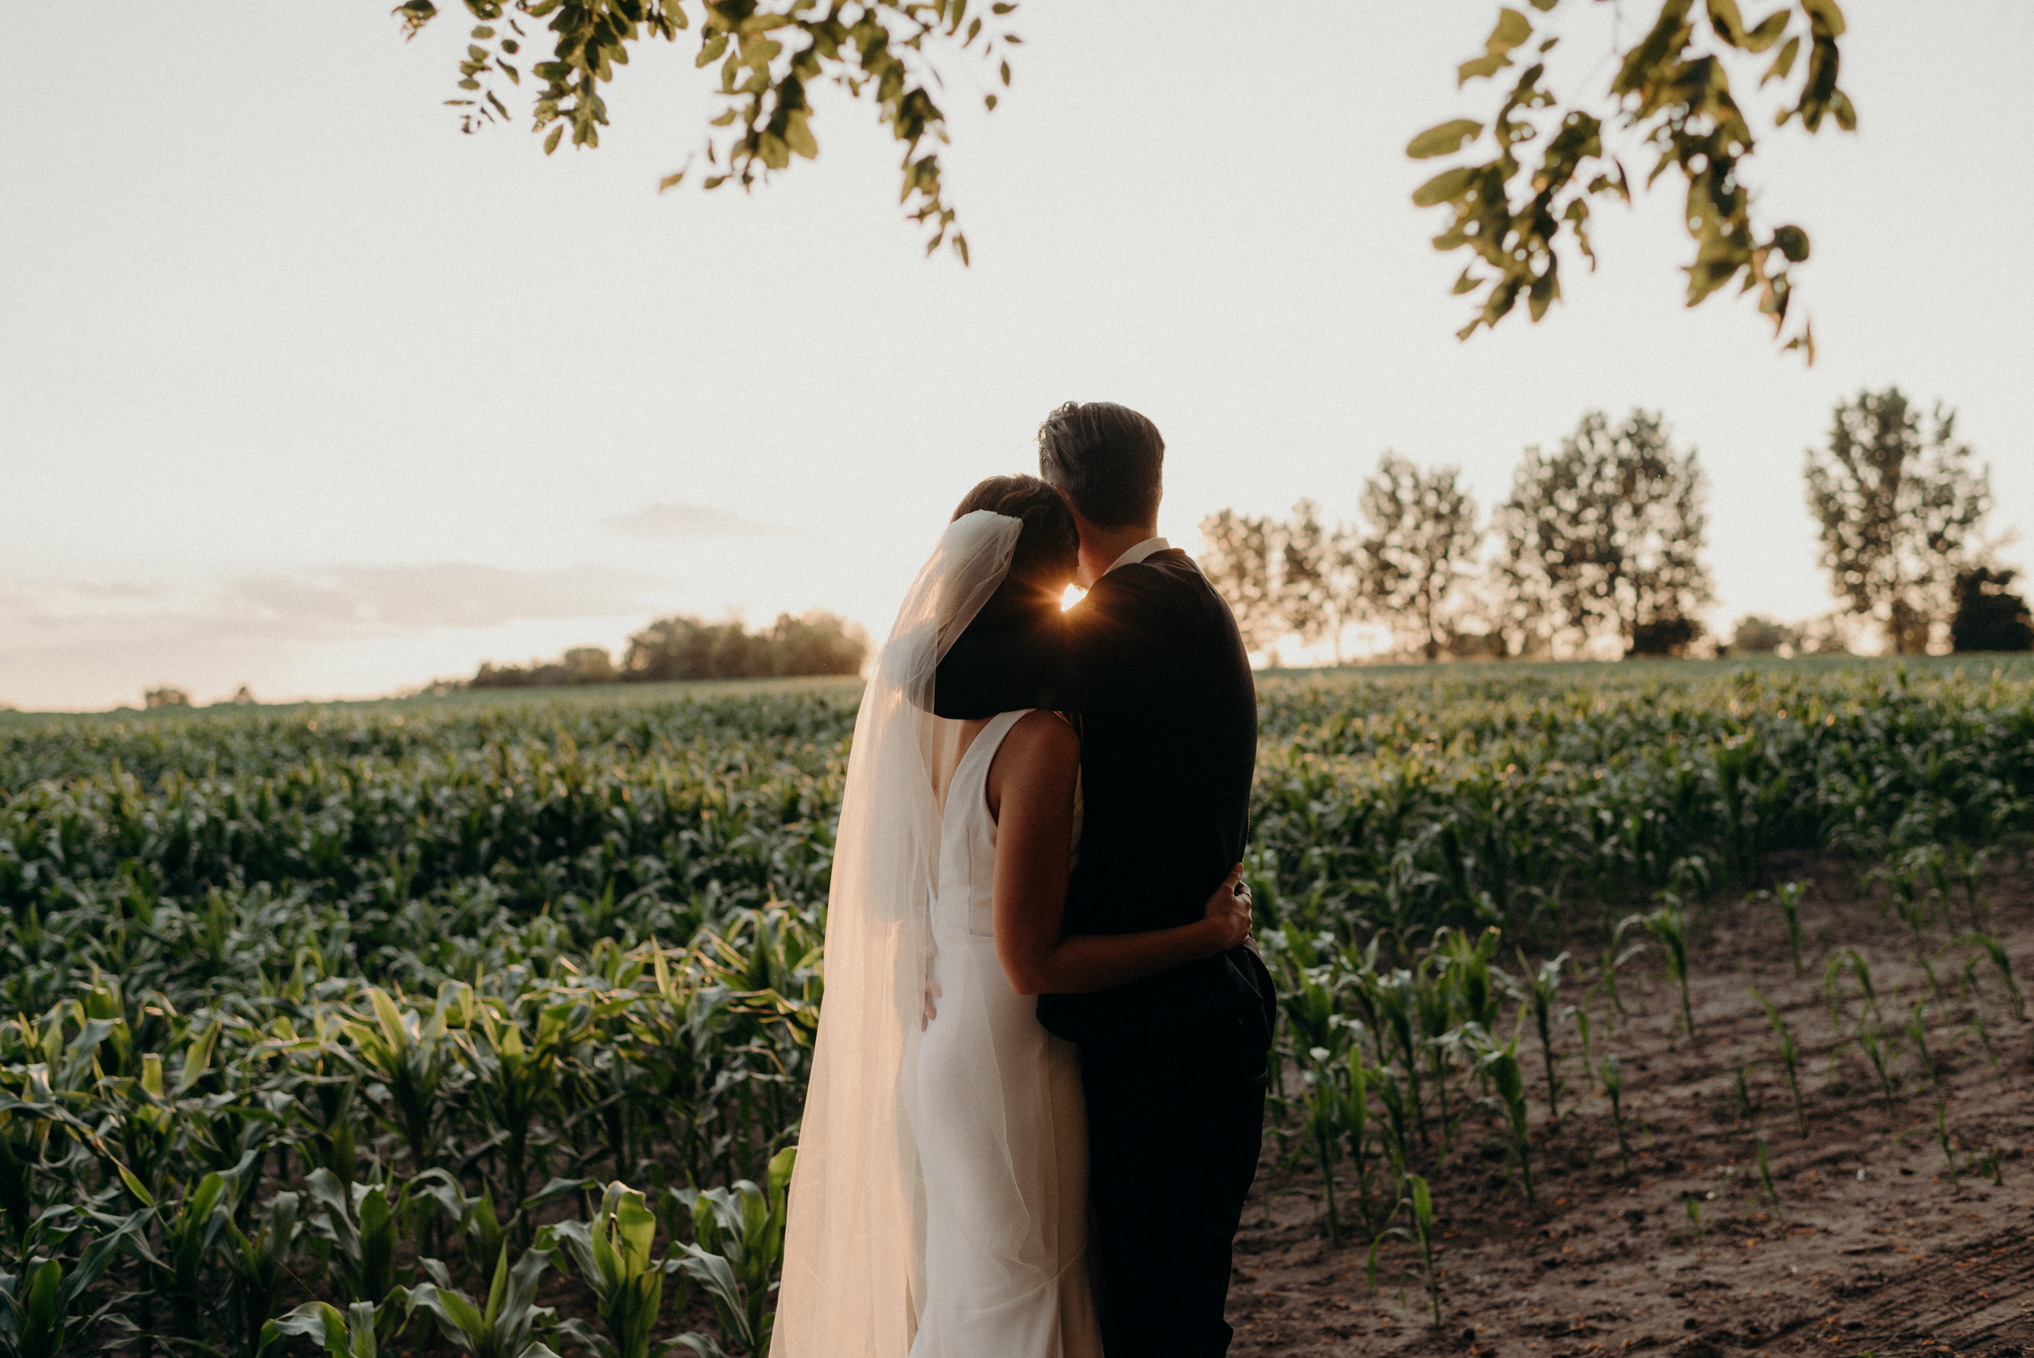 bride and groom watching sunset over corn field in Ontario